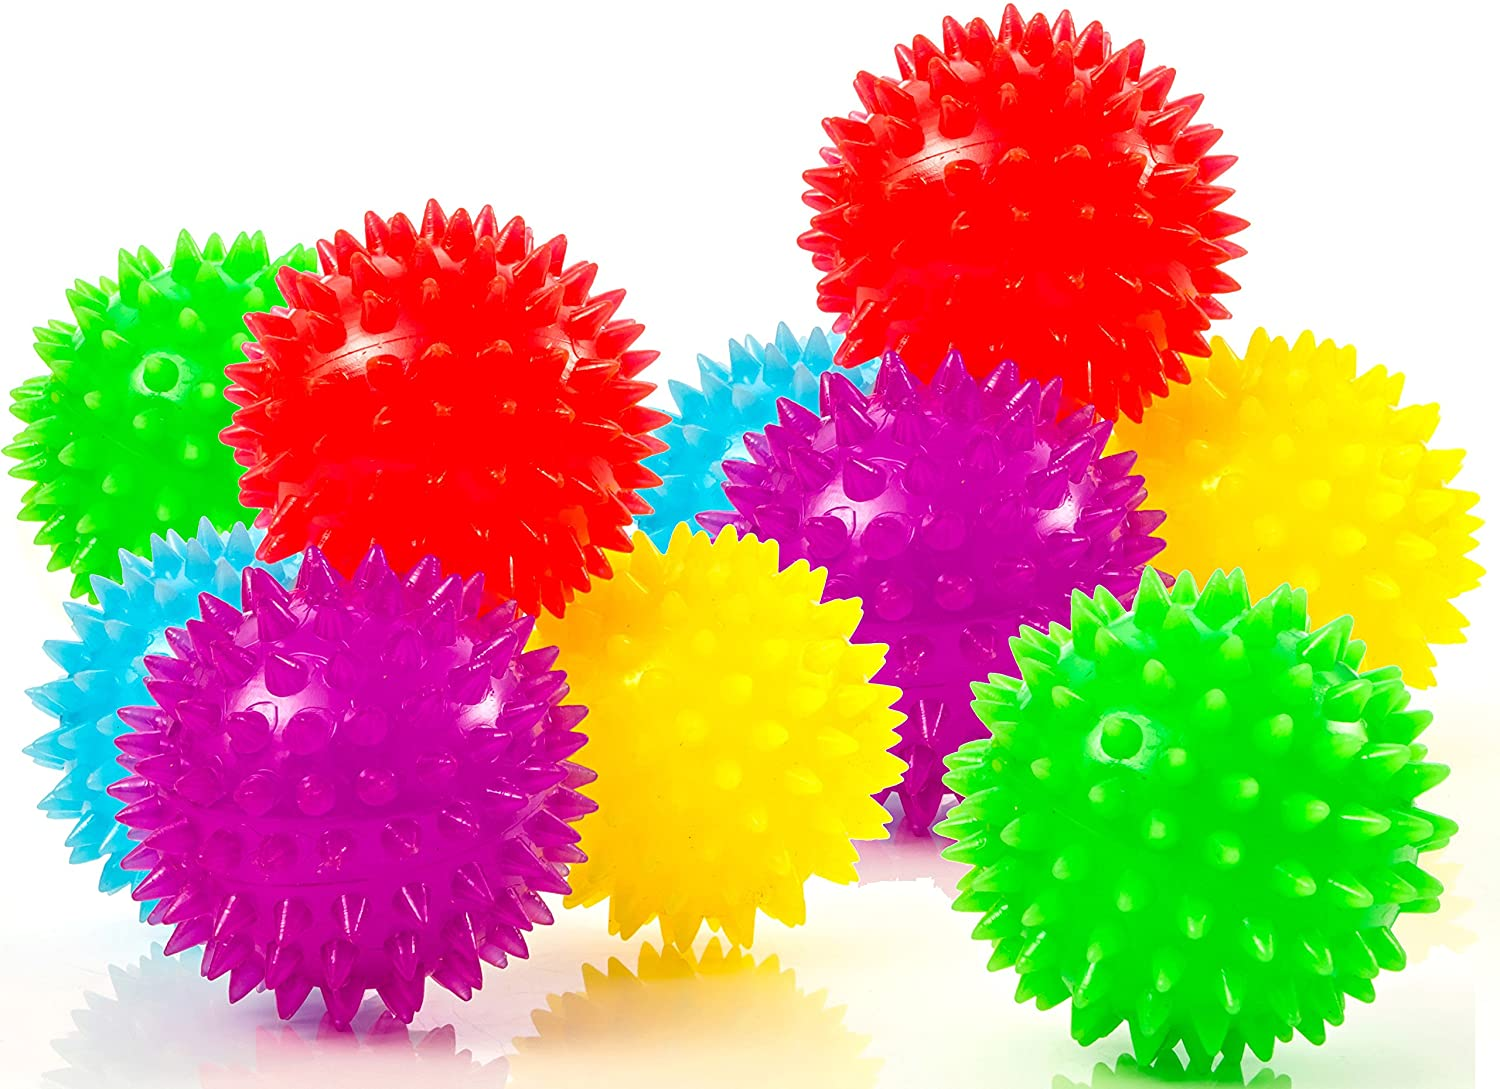 Impresa Products 10-Pack of Spiky Sensory Balls - Squeezy and Bouncy Fidget Toys / Sensory Toys - BPA/Phthalate/Latex-Free